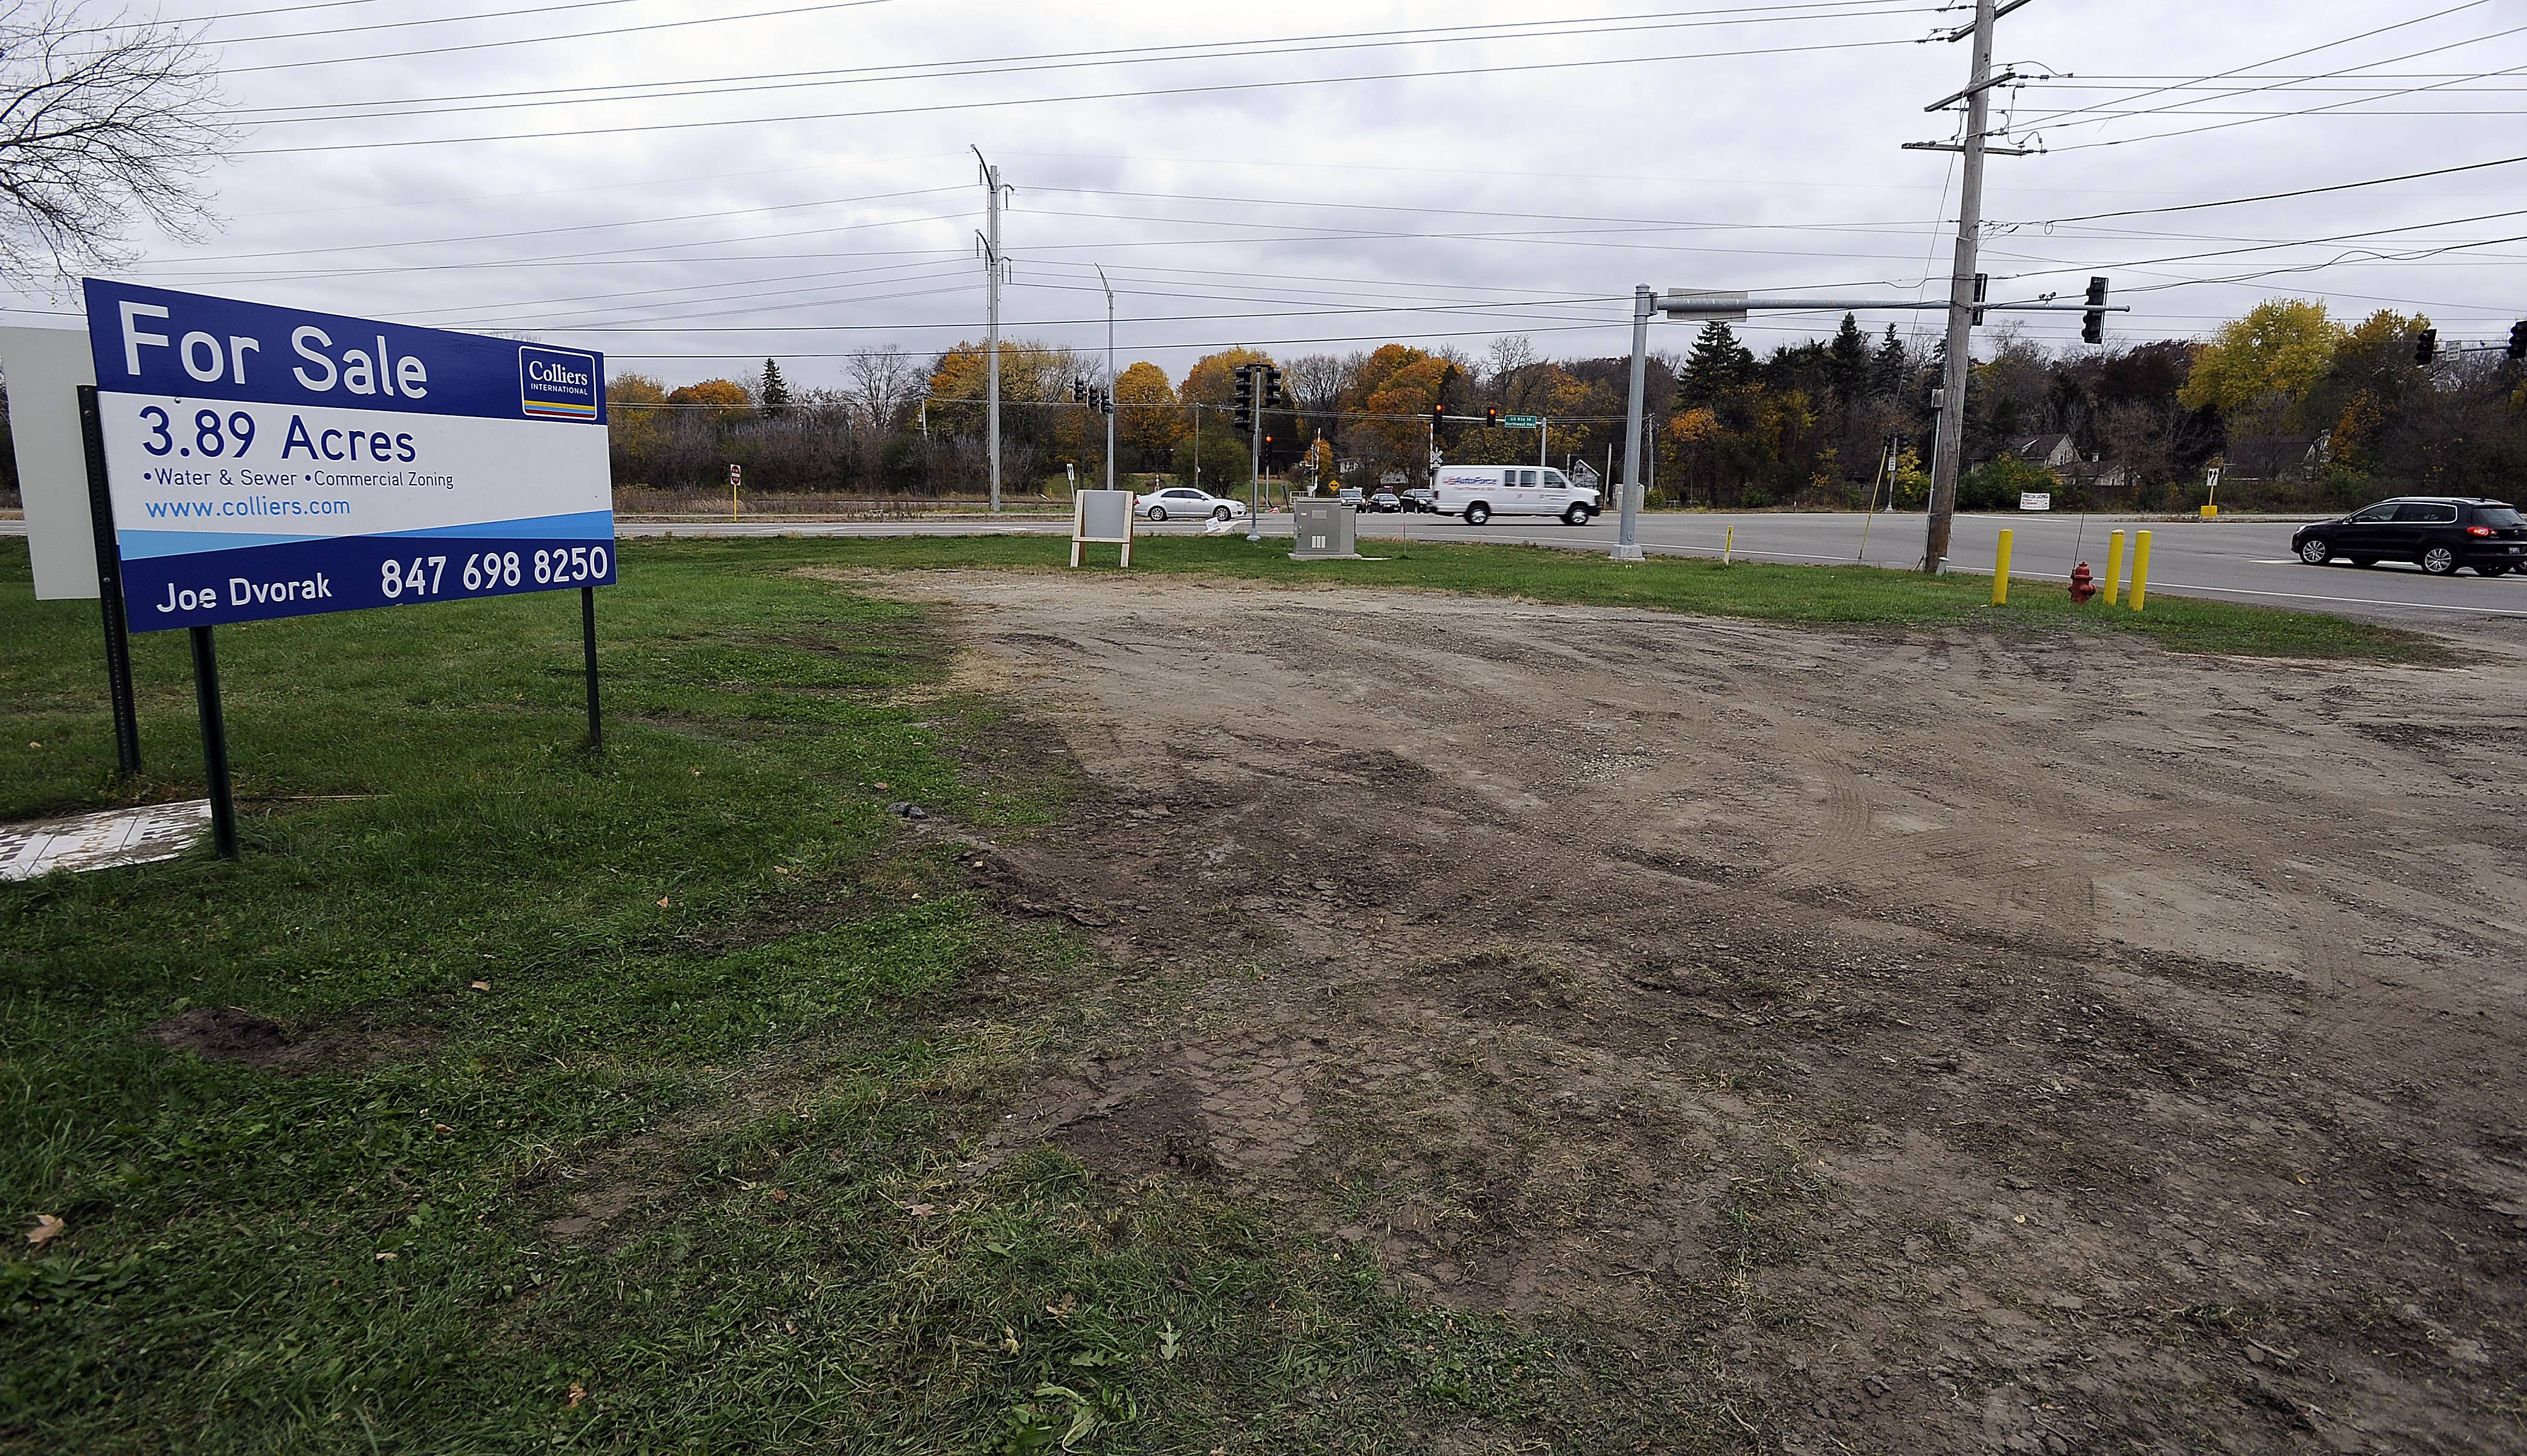 Decision coming on controversial Lake Barrington gas station plan?